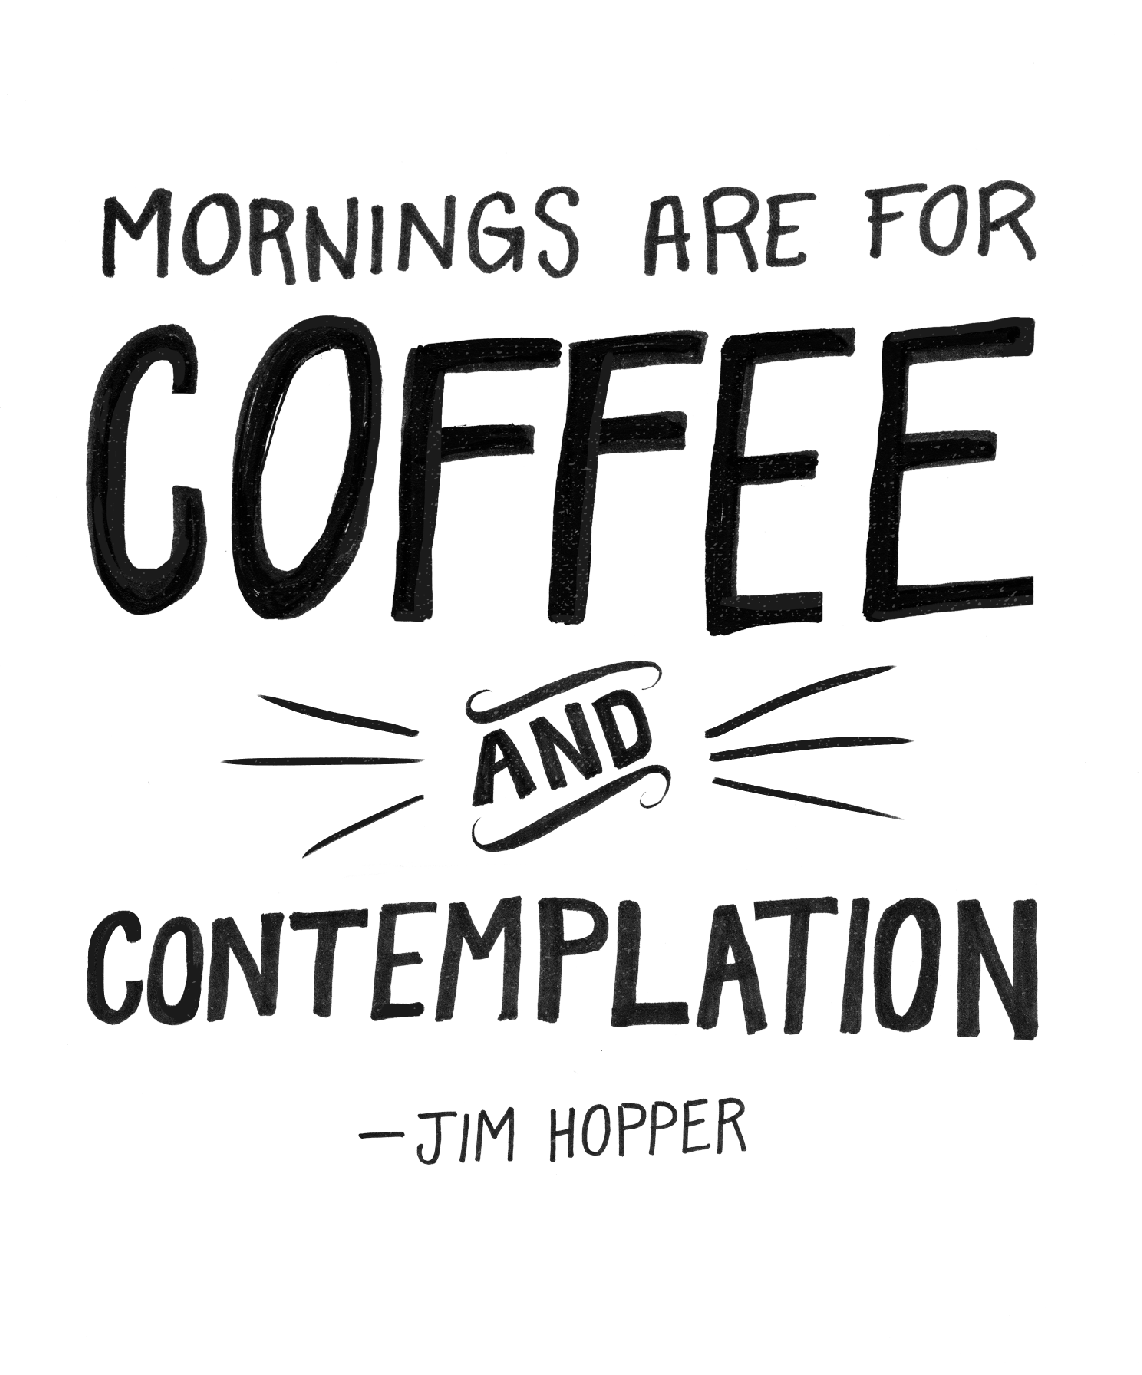 """Mornings are for Coffee and Contemplation."" ~ Jim Hopper"